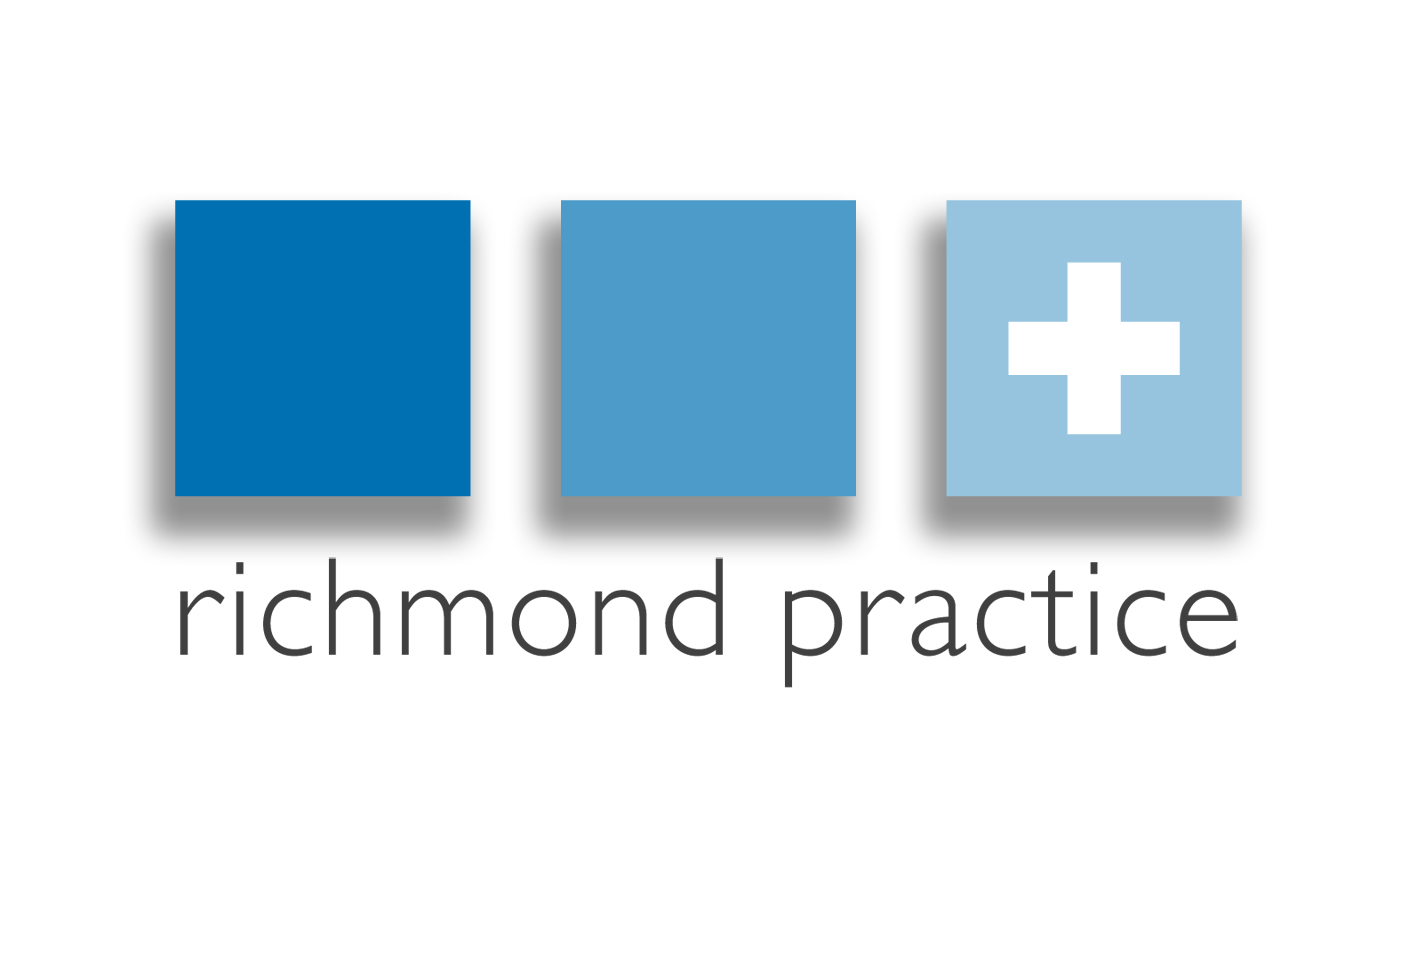 +richmond practice - private doctors' service